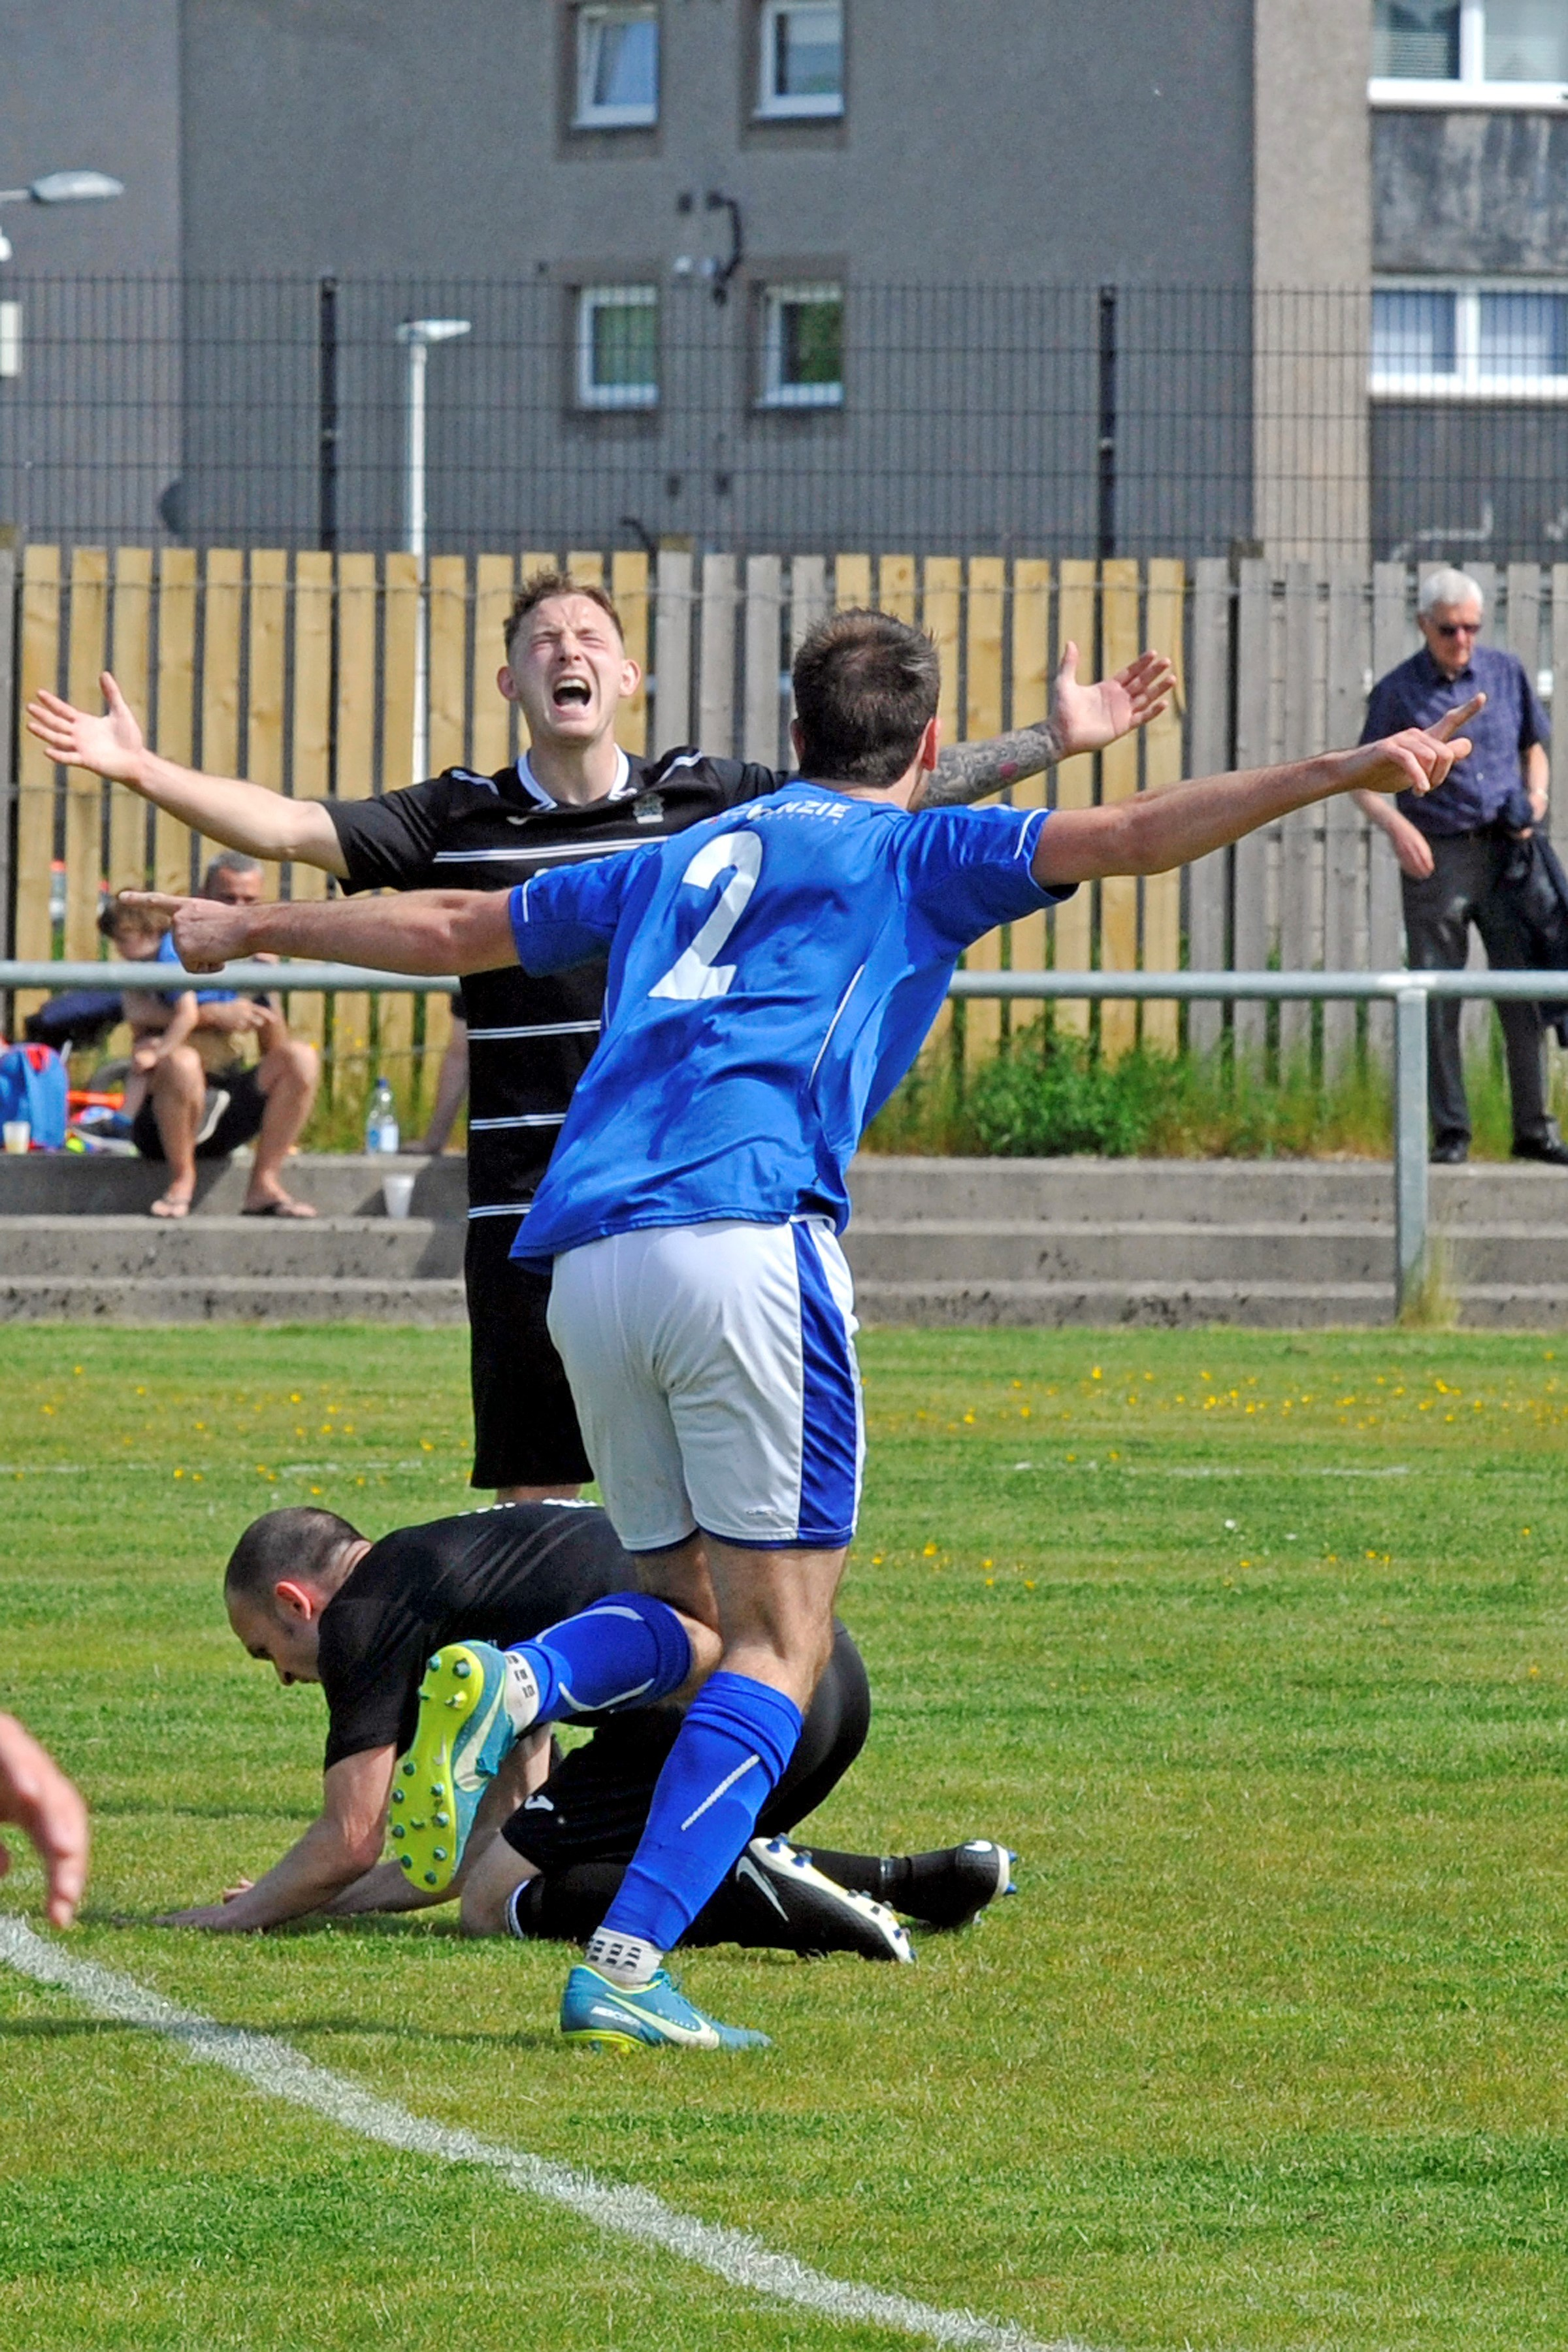 VITAL STRIKE: Celebrations on Saturday as Ben Carson puts Irvine Meadow ahead against Glencairn.